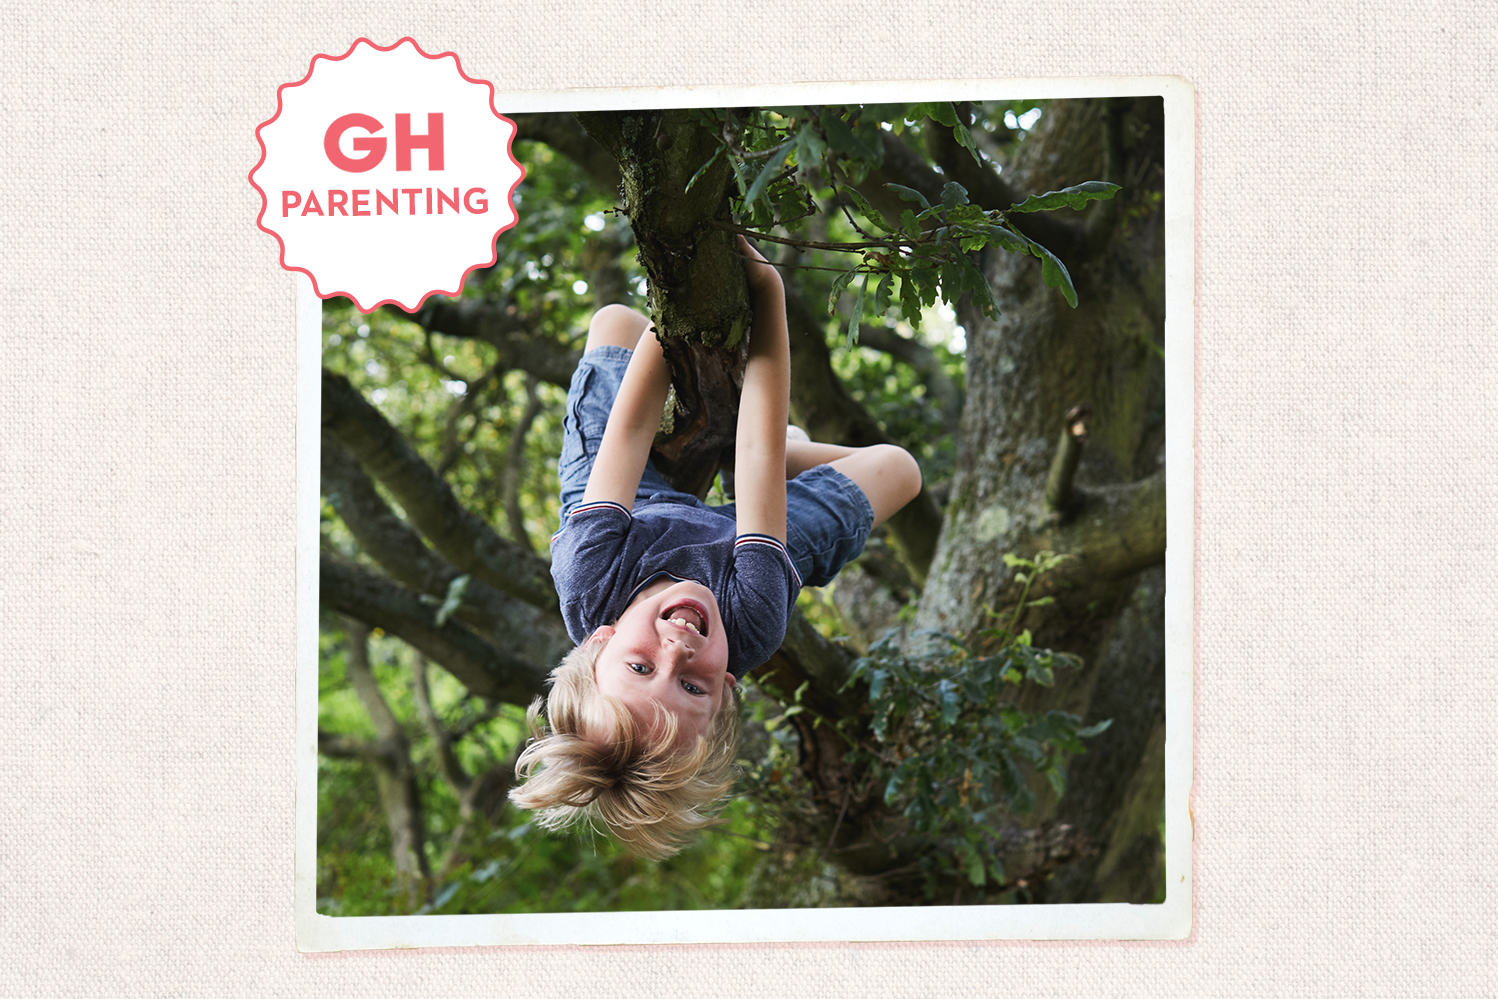 What Is Permissive Parenting? Experts Say This Parenting Style Fails Kids